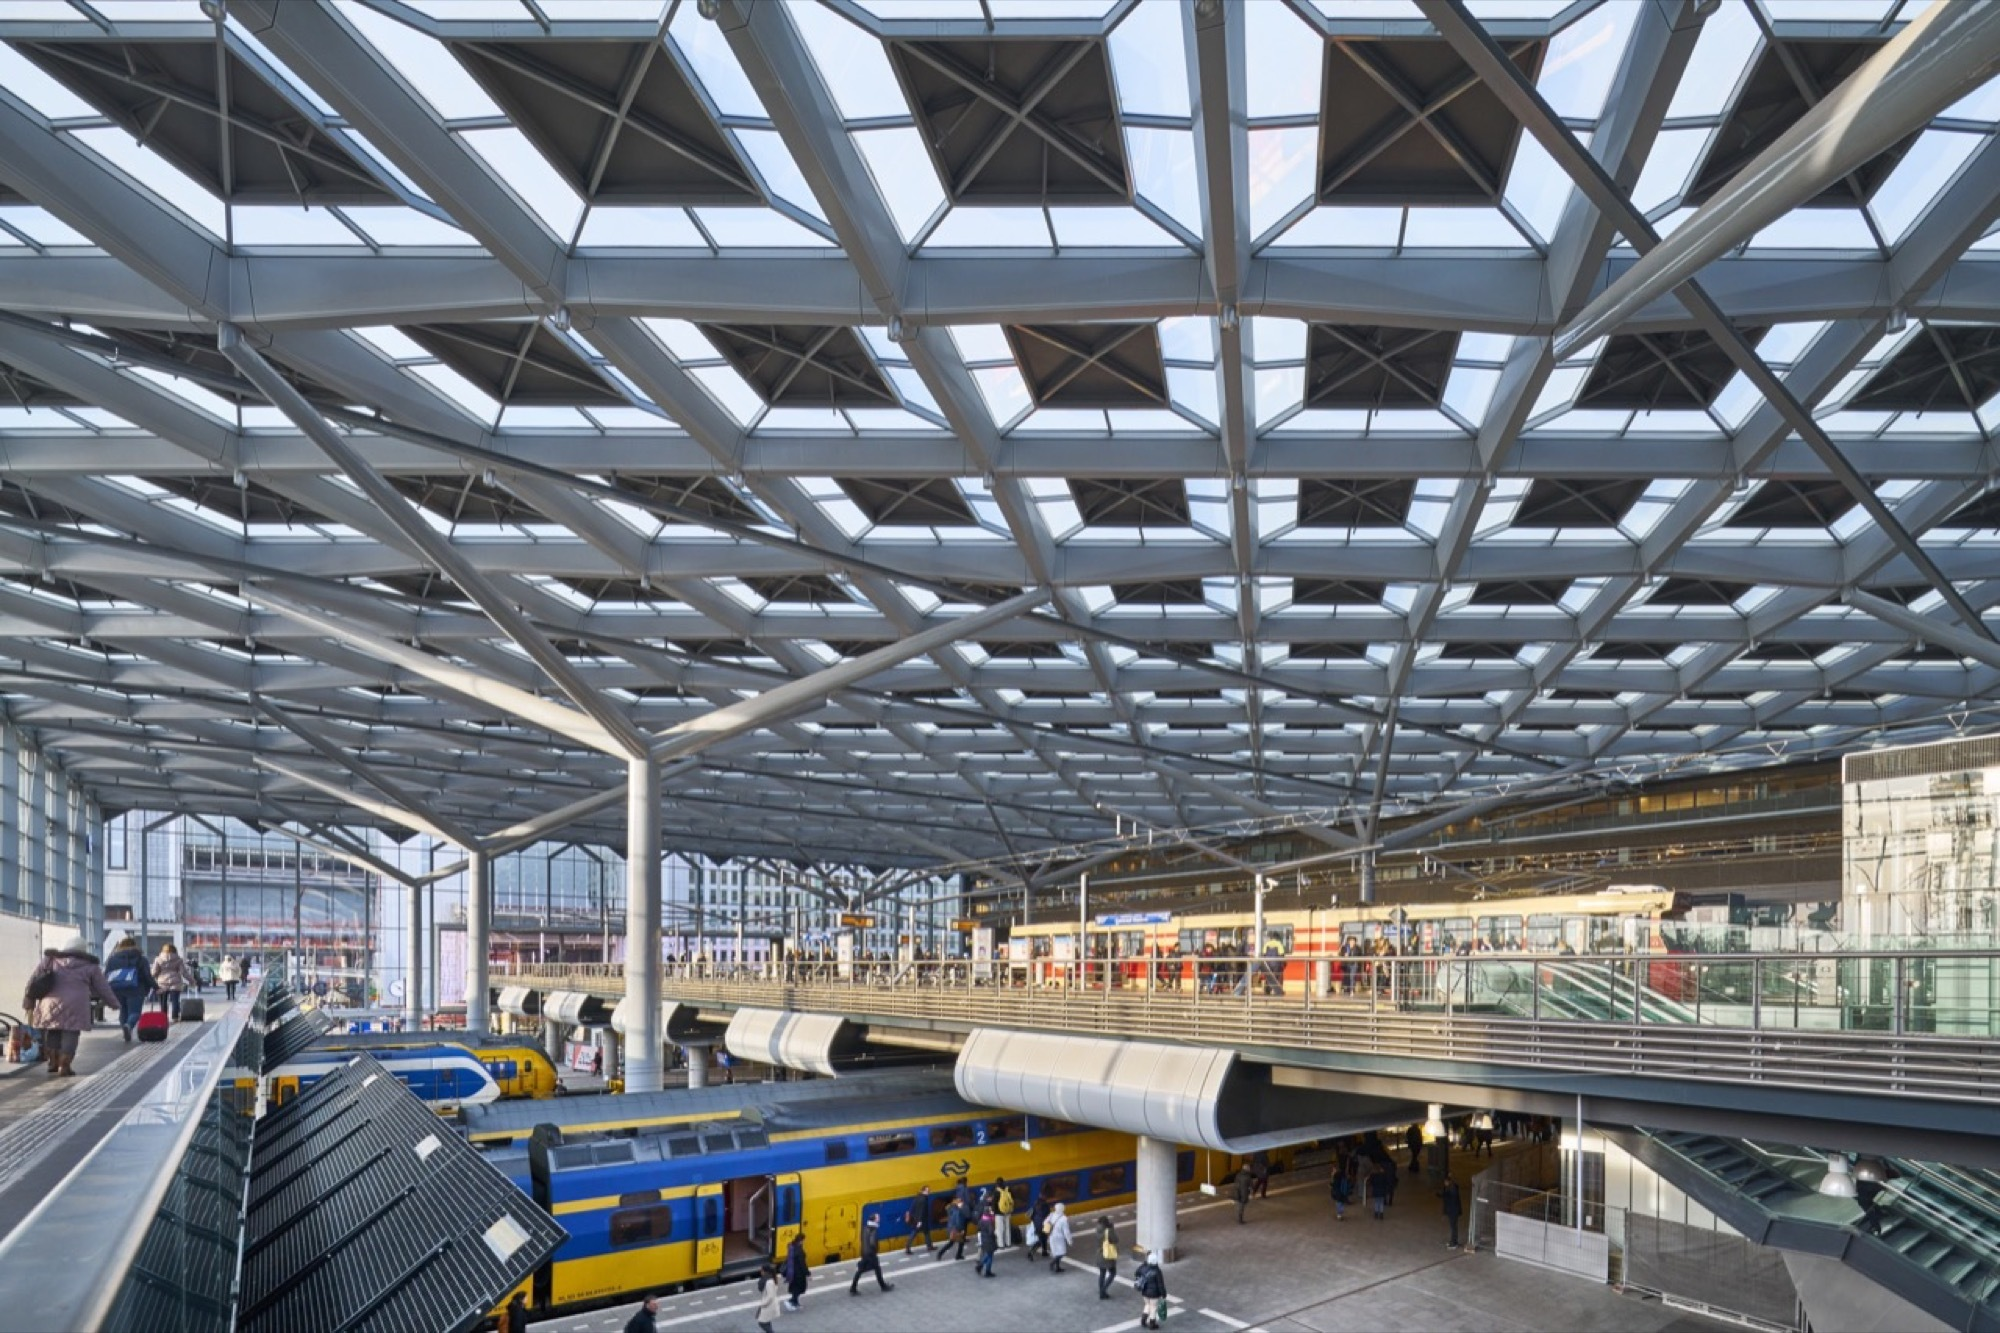 The Hague Central Station Benthem Crouwel Architects